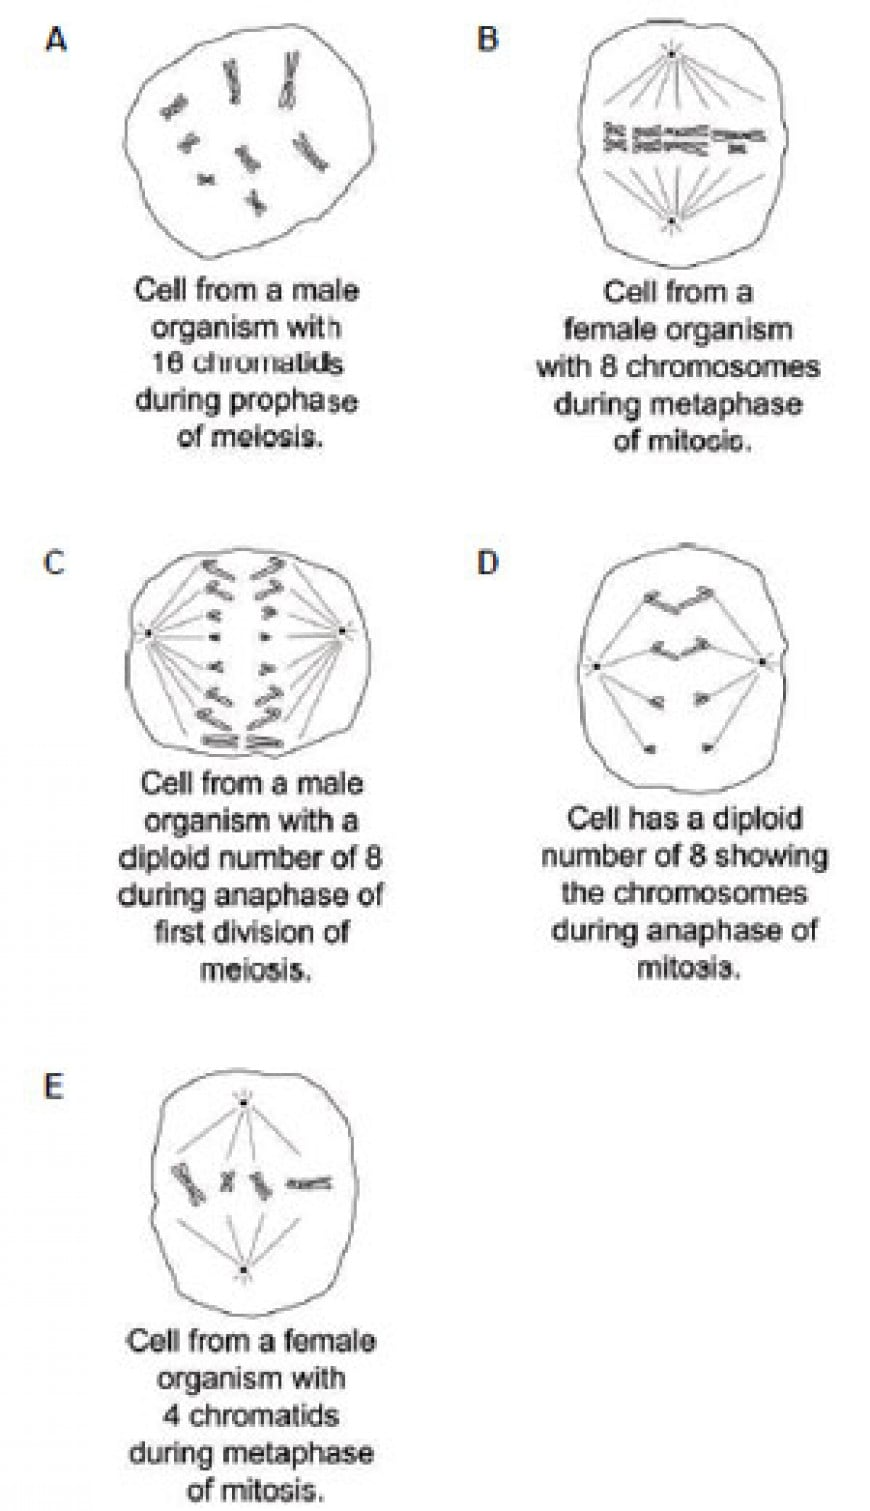 The diagrams show animal cells from organisms that sexually reproduce. Each diagram shows a single cell containing chromosomes during cell division. Which one of the following diagrams has a correct description for a cell from an organism with a haploid number of 4? [Assume that the sex of the organism is inherited in the same way as in humans.]